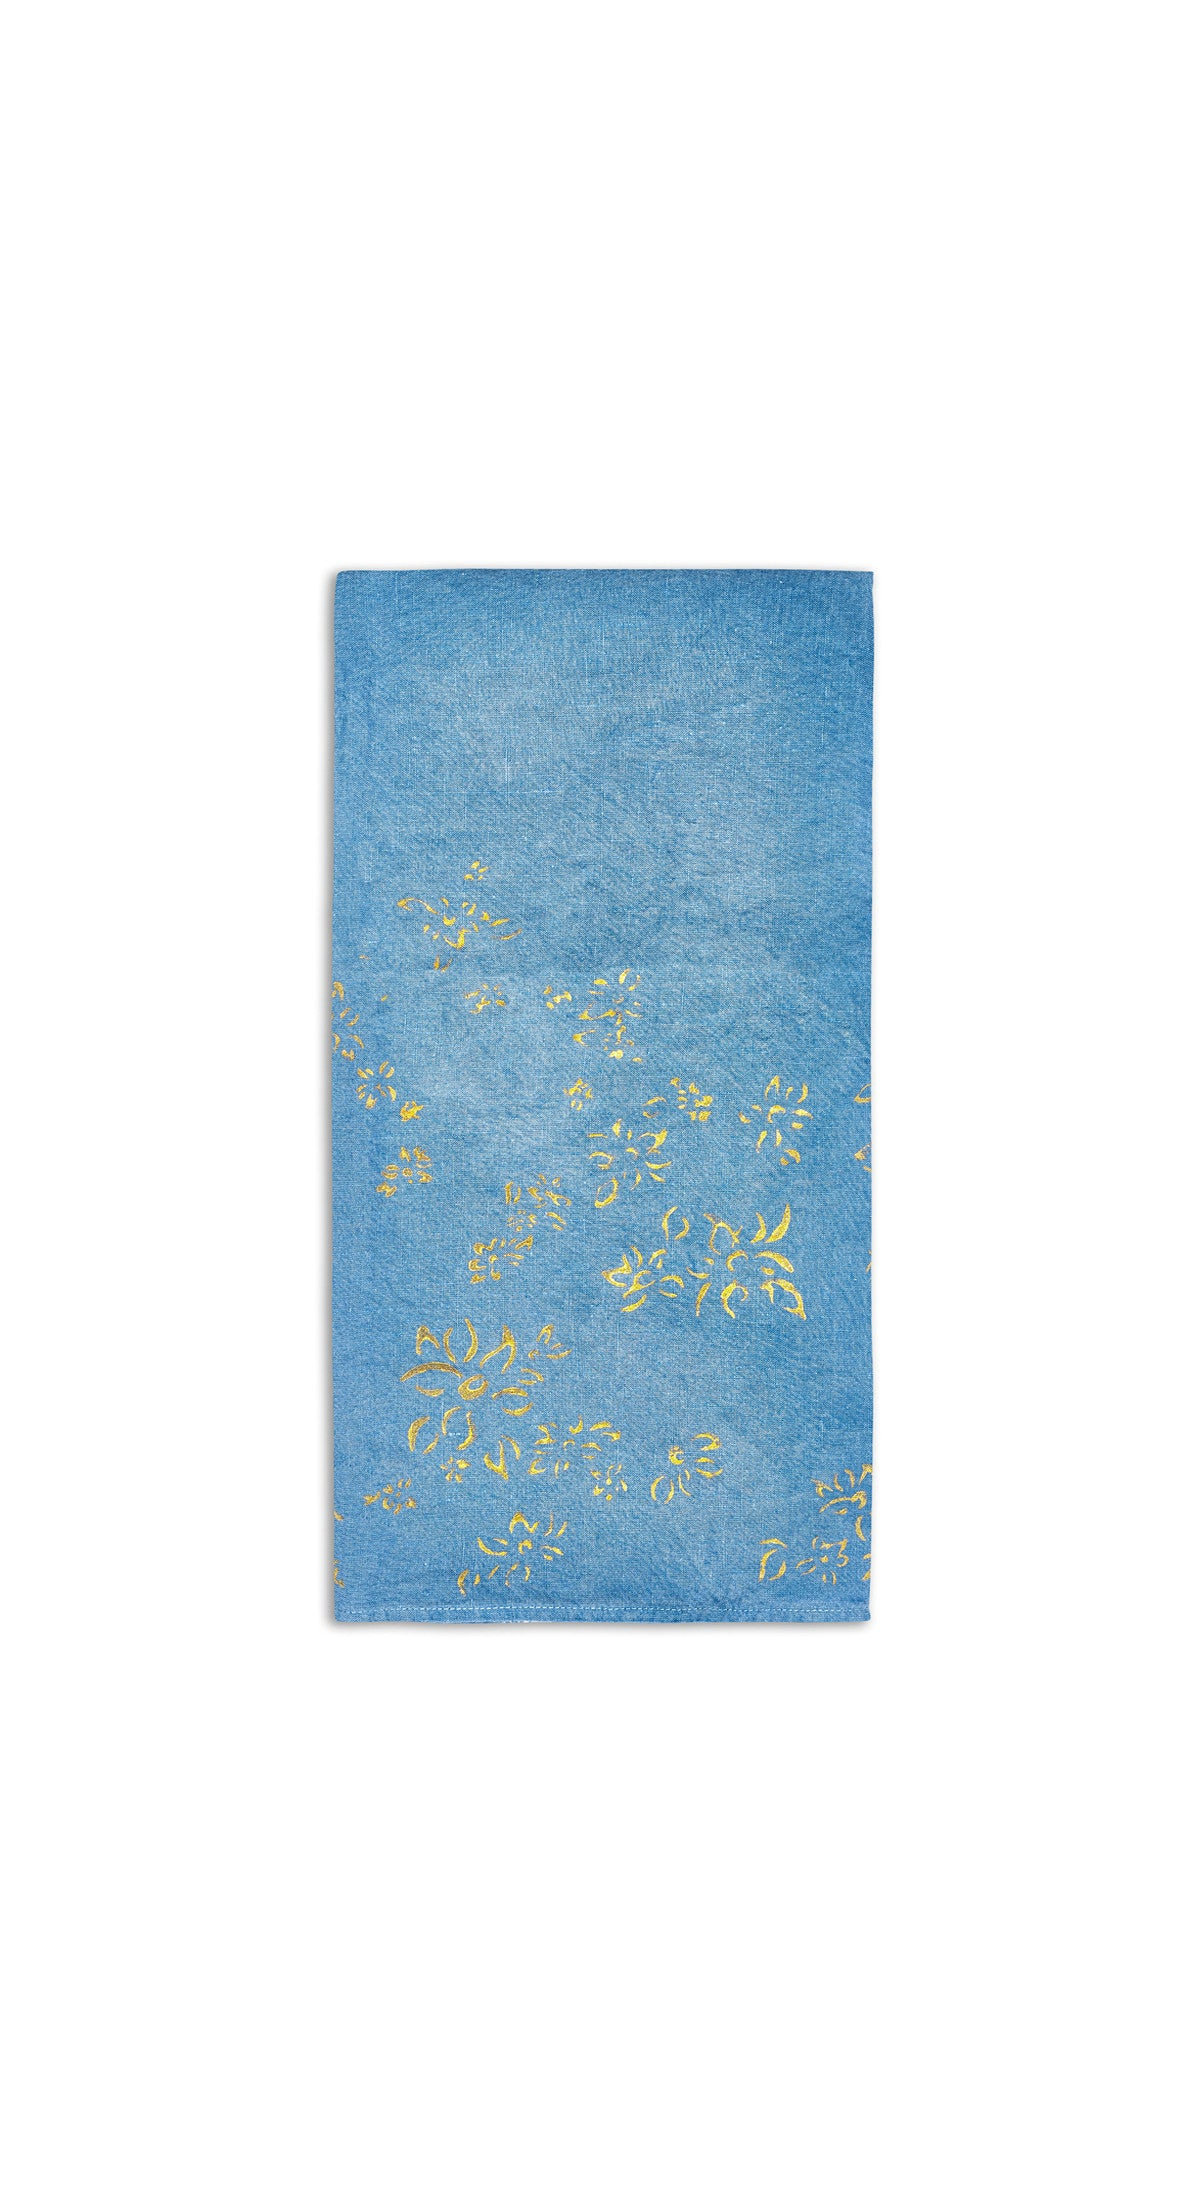 Bernadette's Falling Flower On Full Field Linen Napkin in Sky Blue & Gold